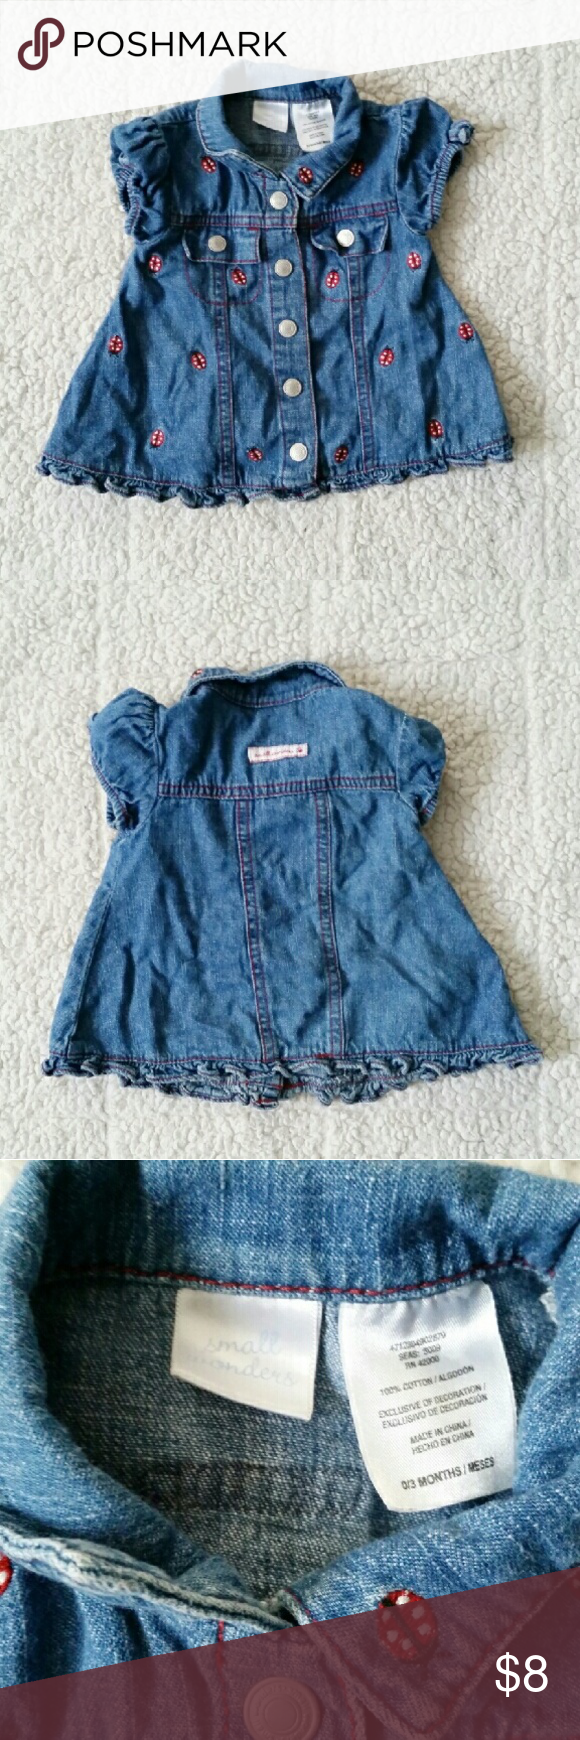 Small Wonders denim ladybug top/dress sz 0-3 month Adorable denim dress, or top with ladybugs all over. Snap button closure. Sz 0-3 months. All items are always clean and from a smoke free home! Small Wonders Dresses Casual